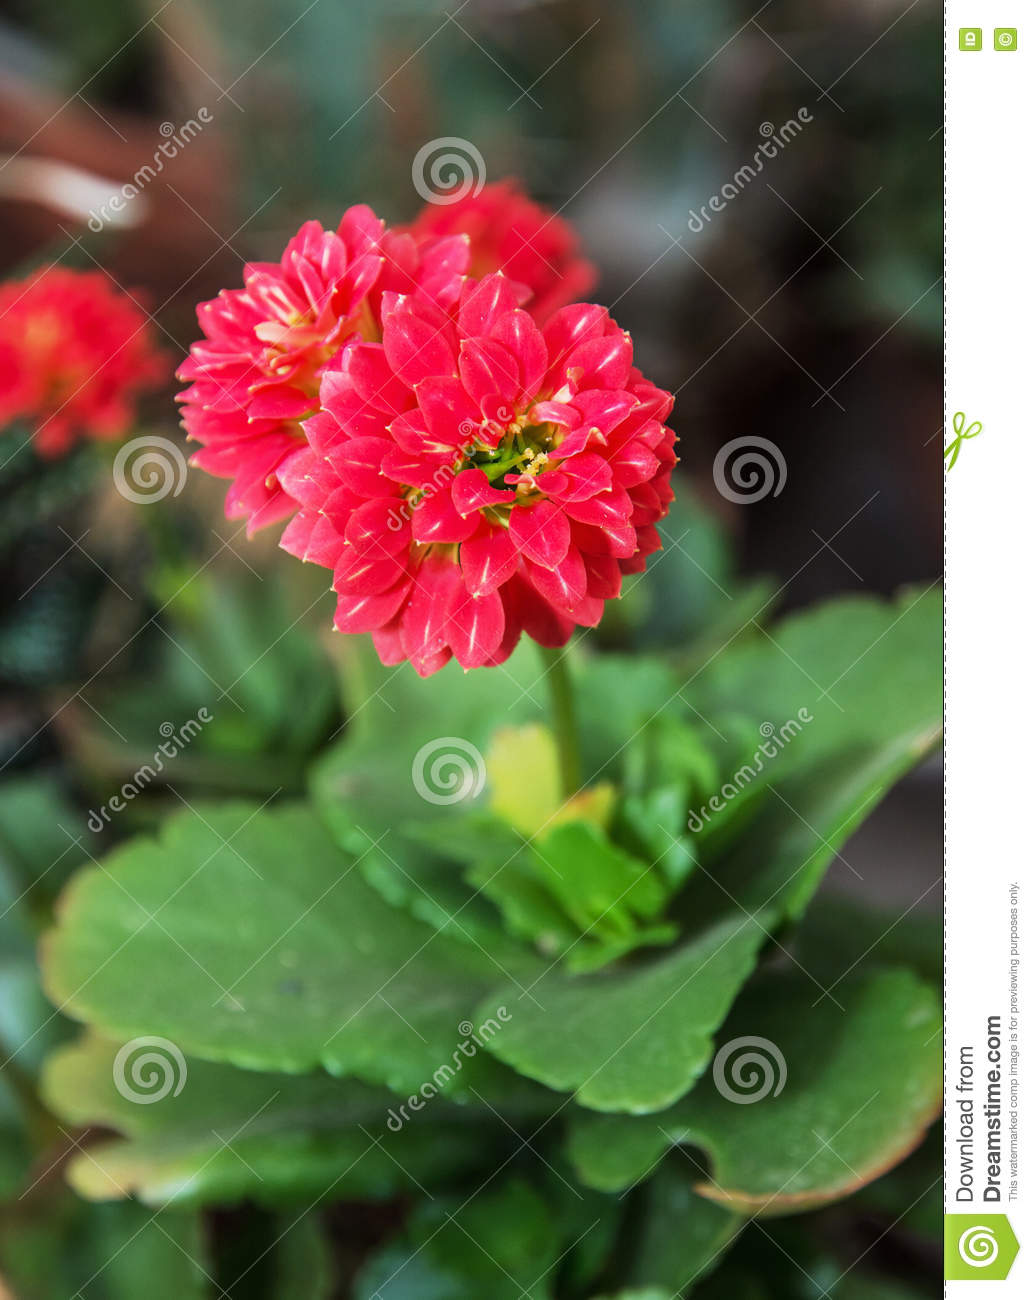 Detail photo of red dahlia flower beauty in nature stock photo detail photo of red dahlia flower beauty in nature izmirmasajfo